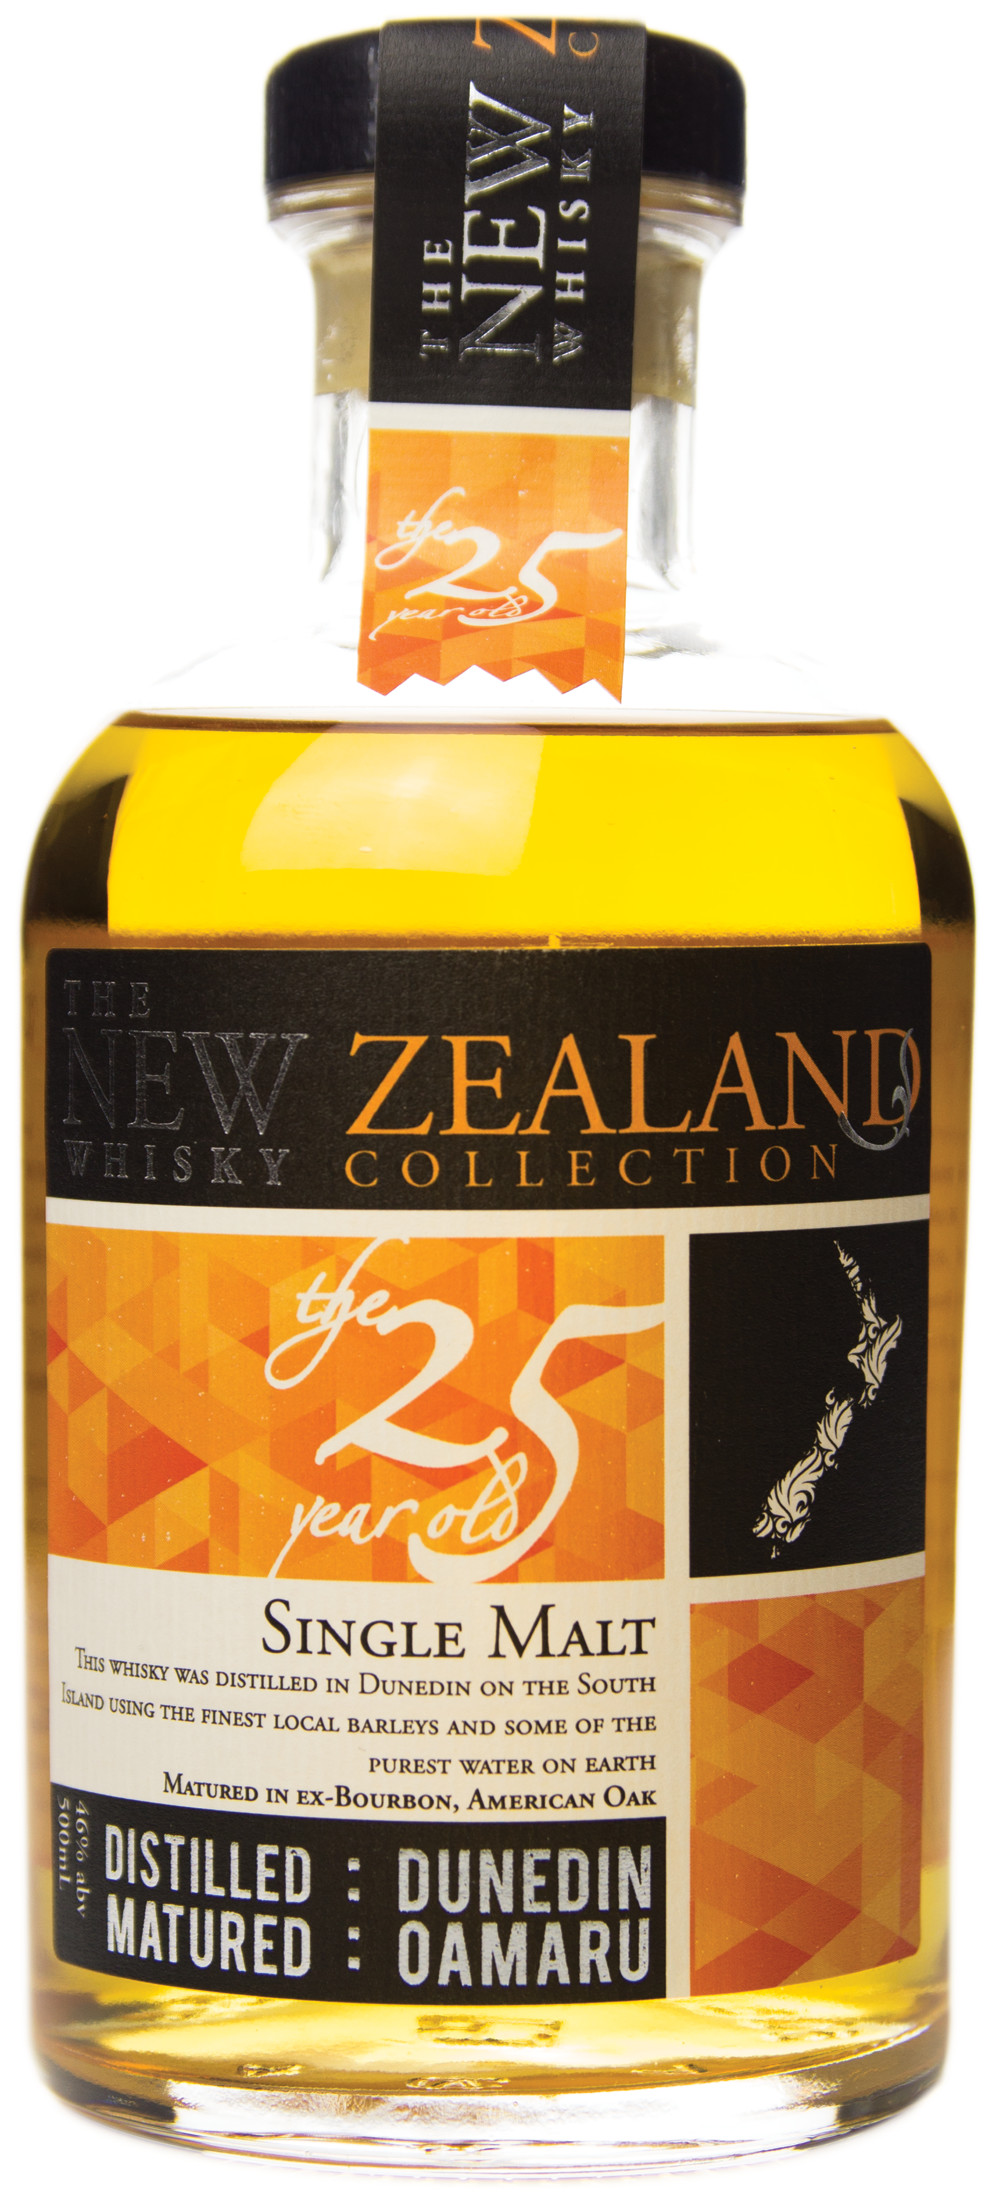 The New Zealand Whisky Collection 25 Year Old